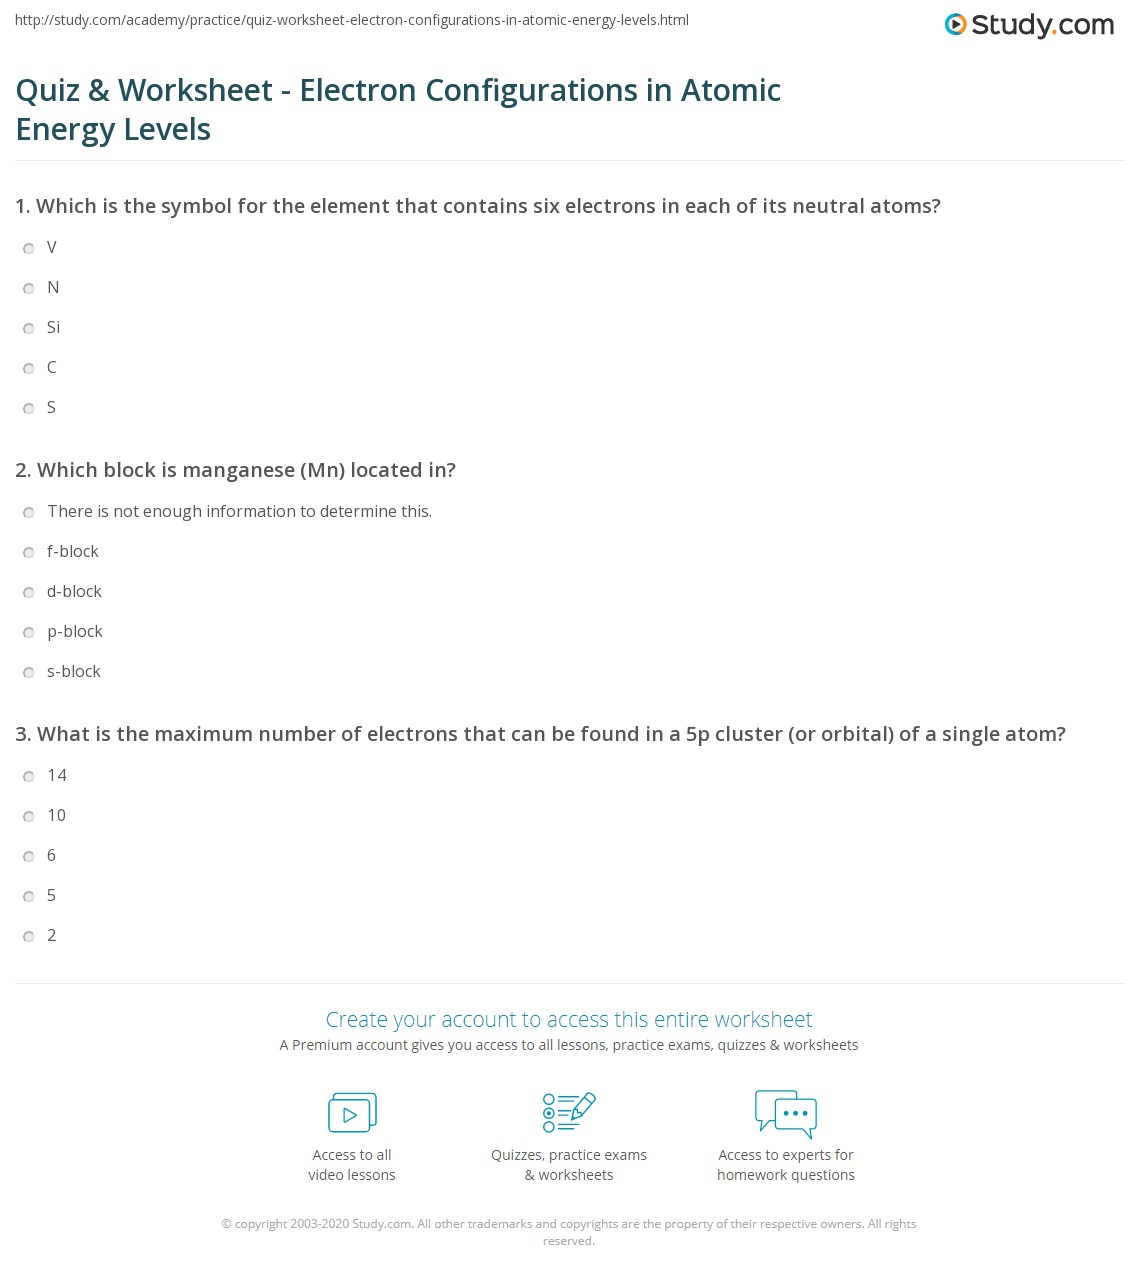 Printables Electron Configuration Worksheet Answers quiz worksheet electron configurations in atomic energy levels print worksheet